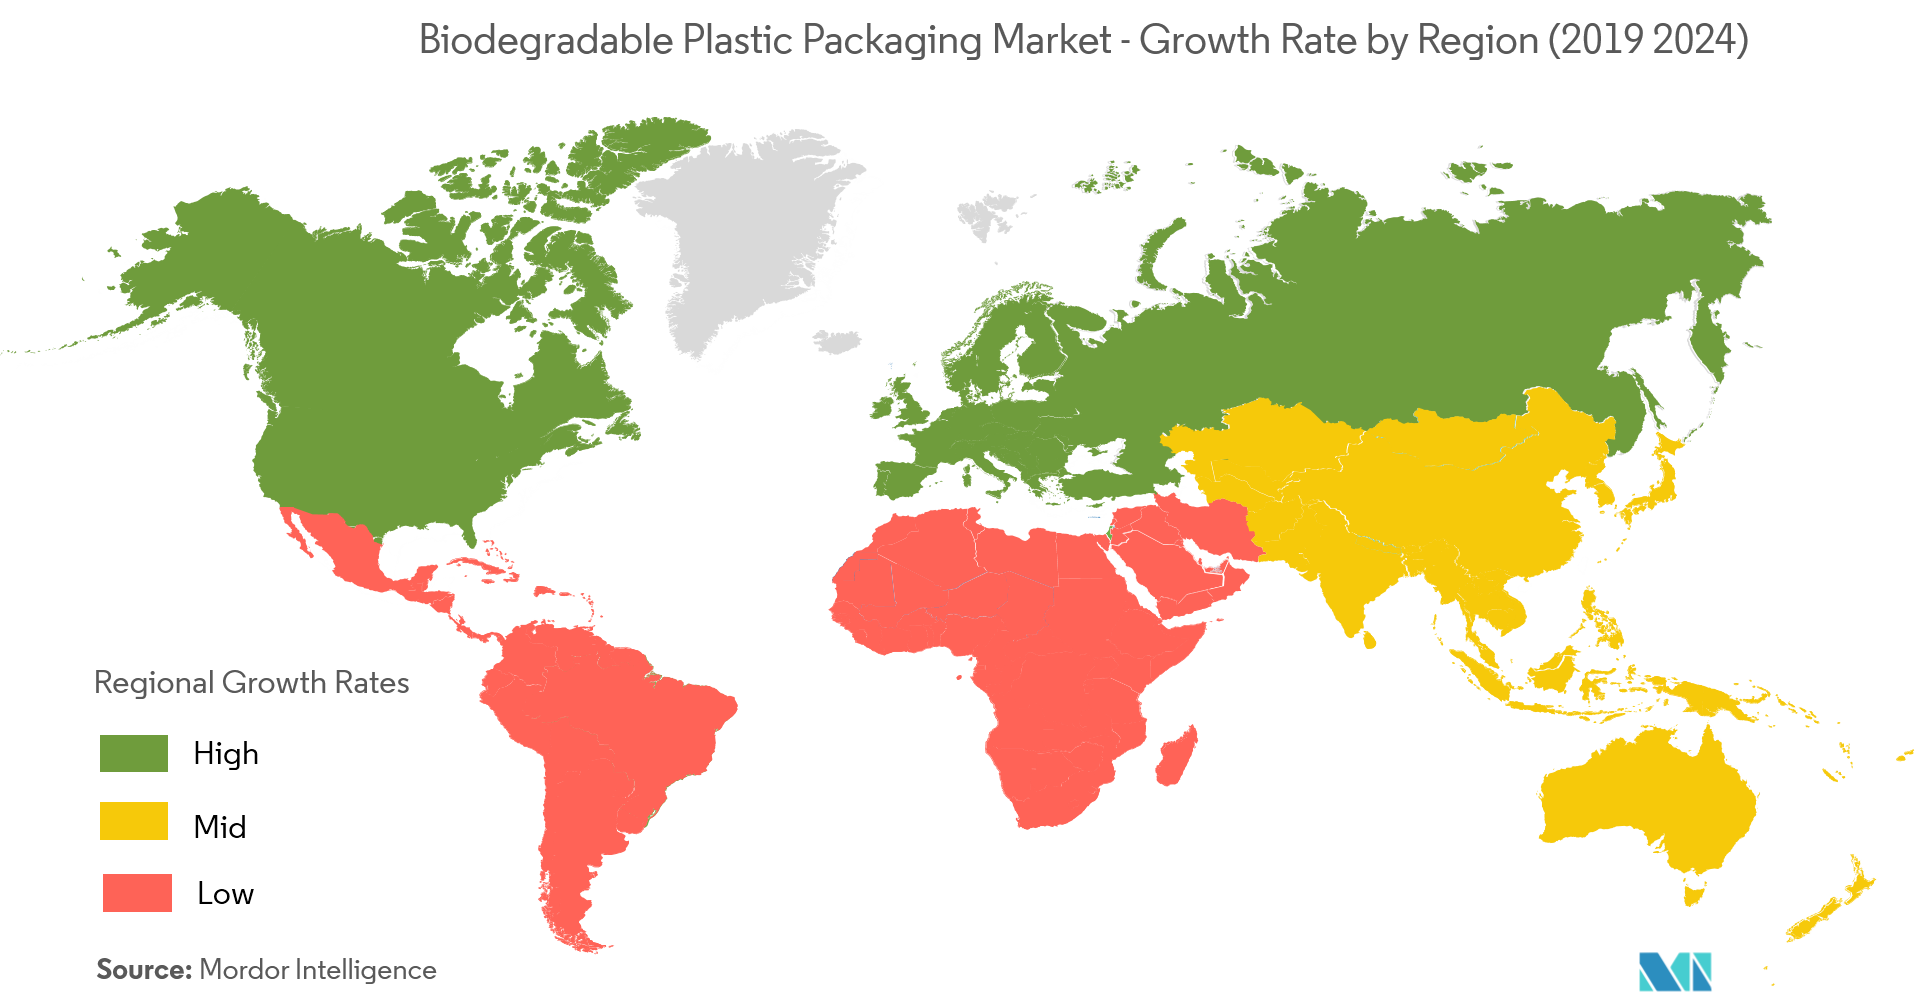 Biodegradable Plastic Packaging Solutions Market Growth Rate